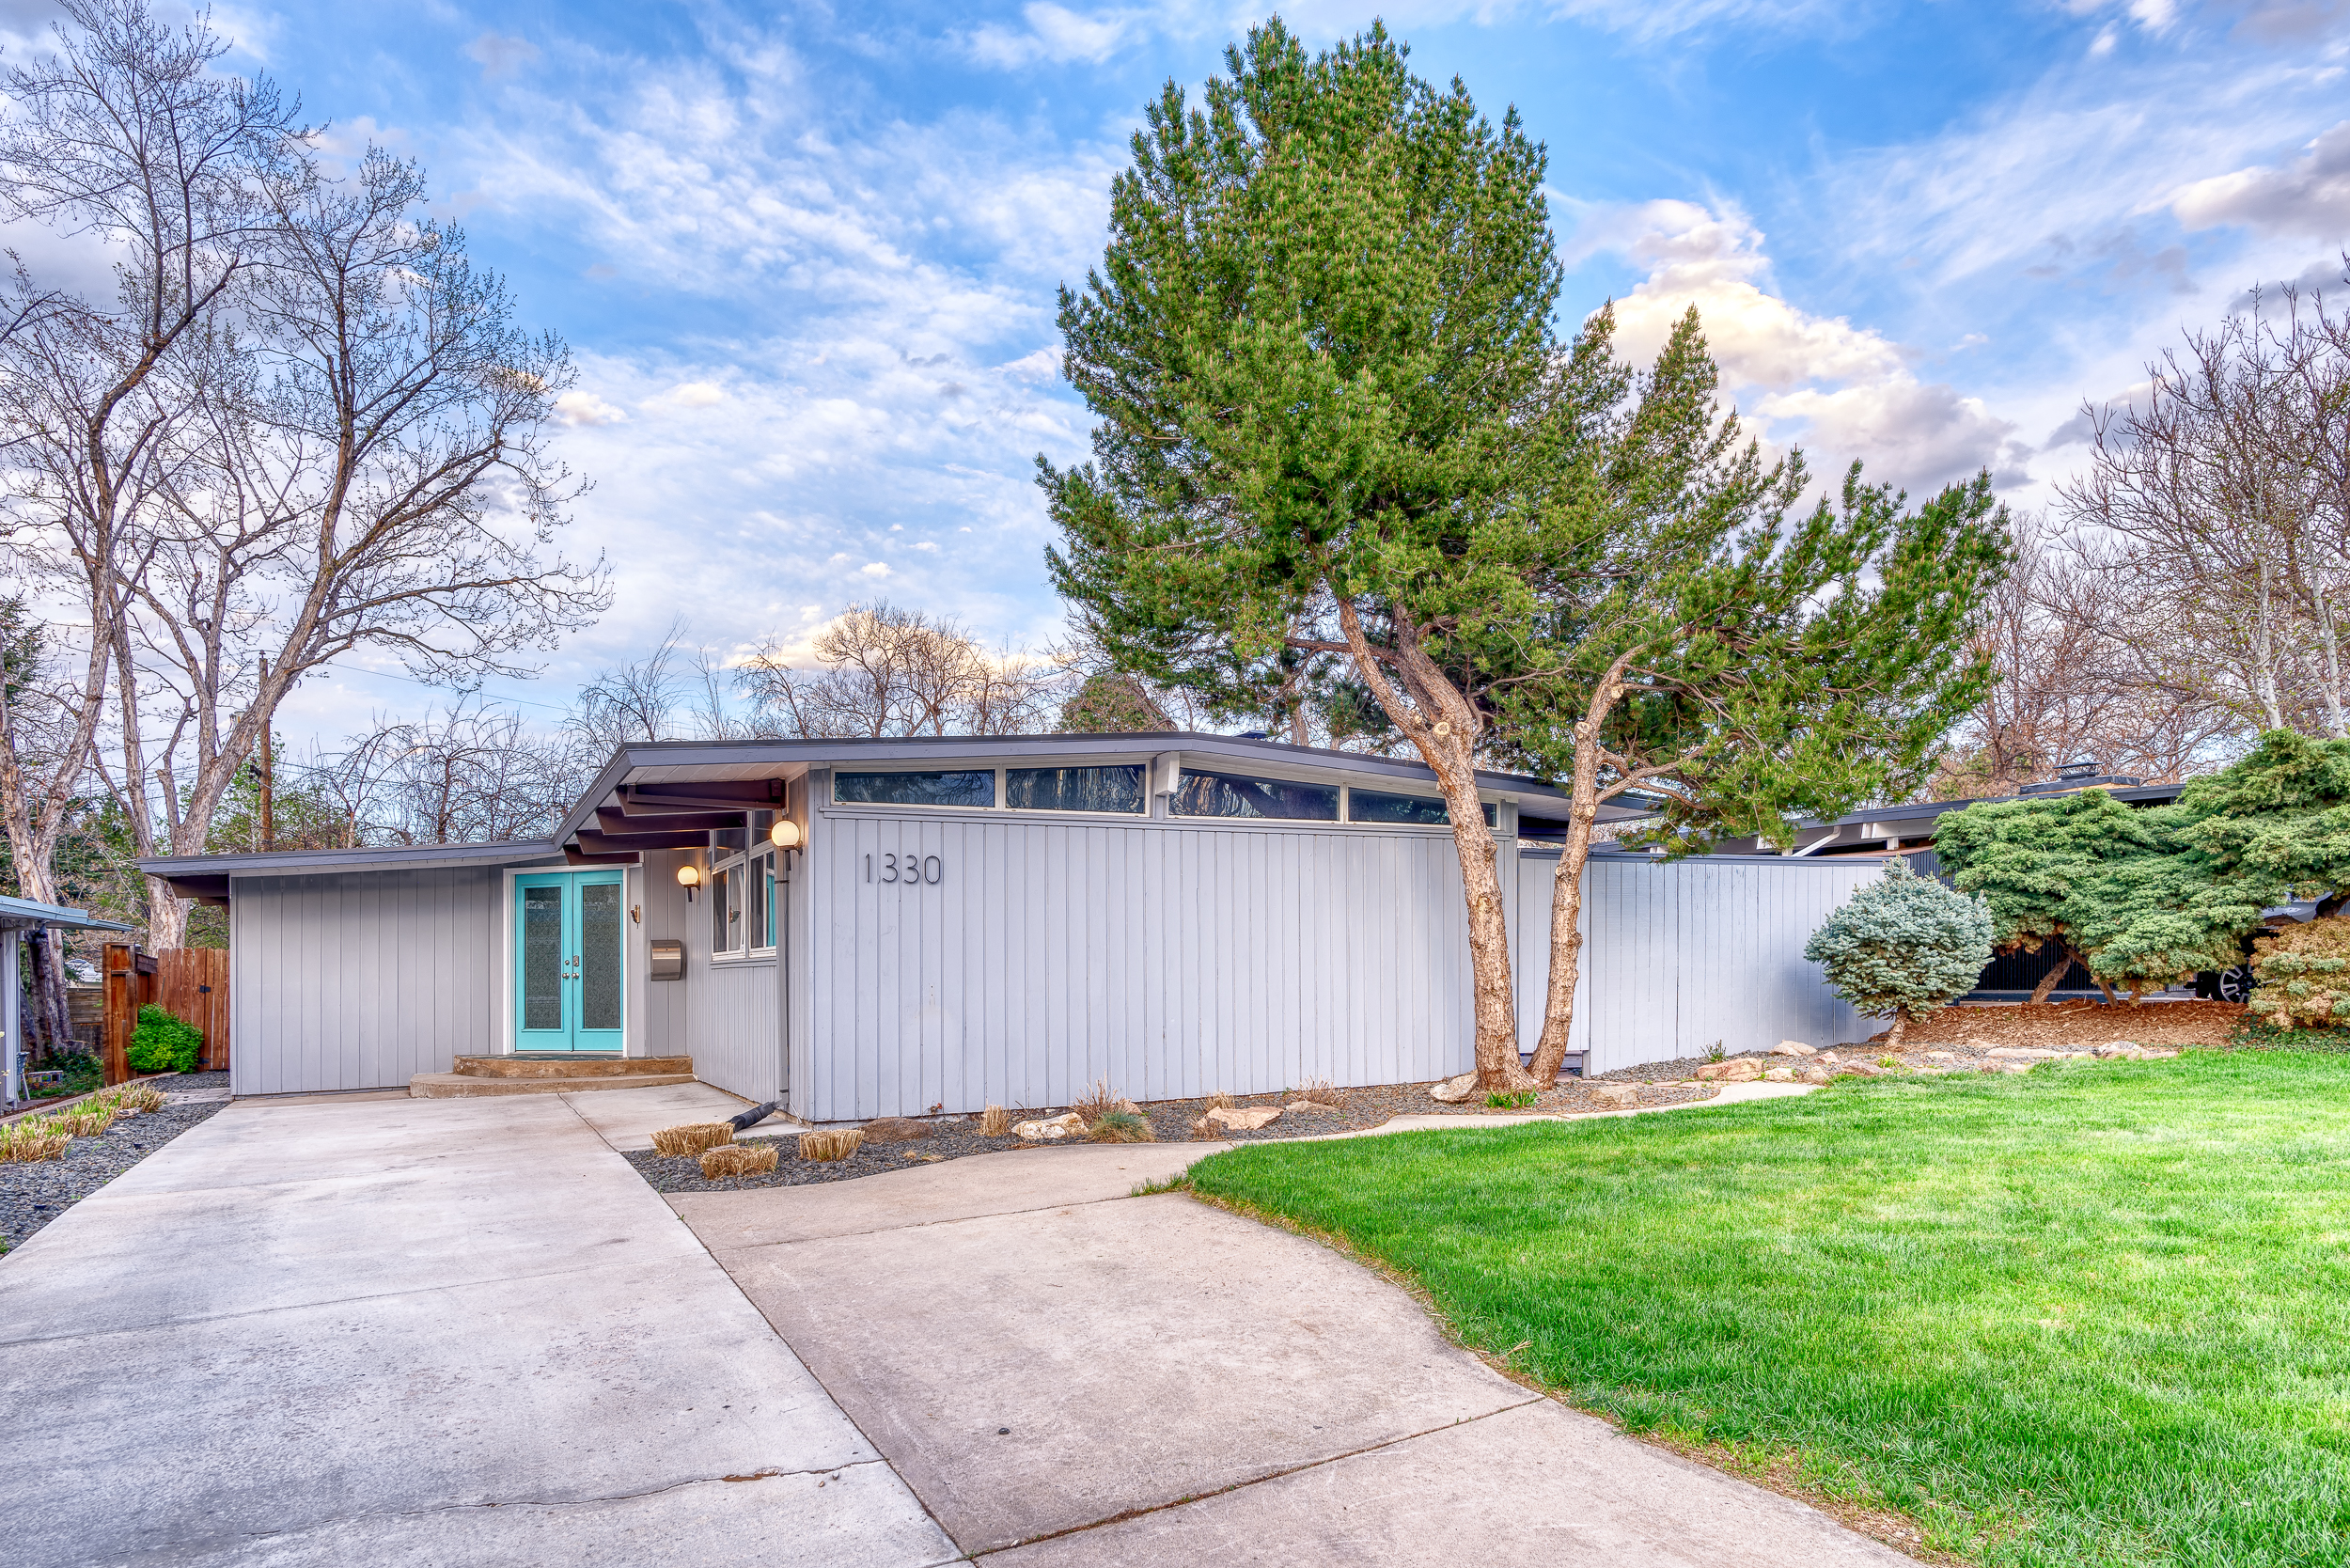 An exterior view of a gray midcentury modern house. There is a driveway, green grass, and a tree.